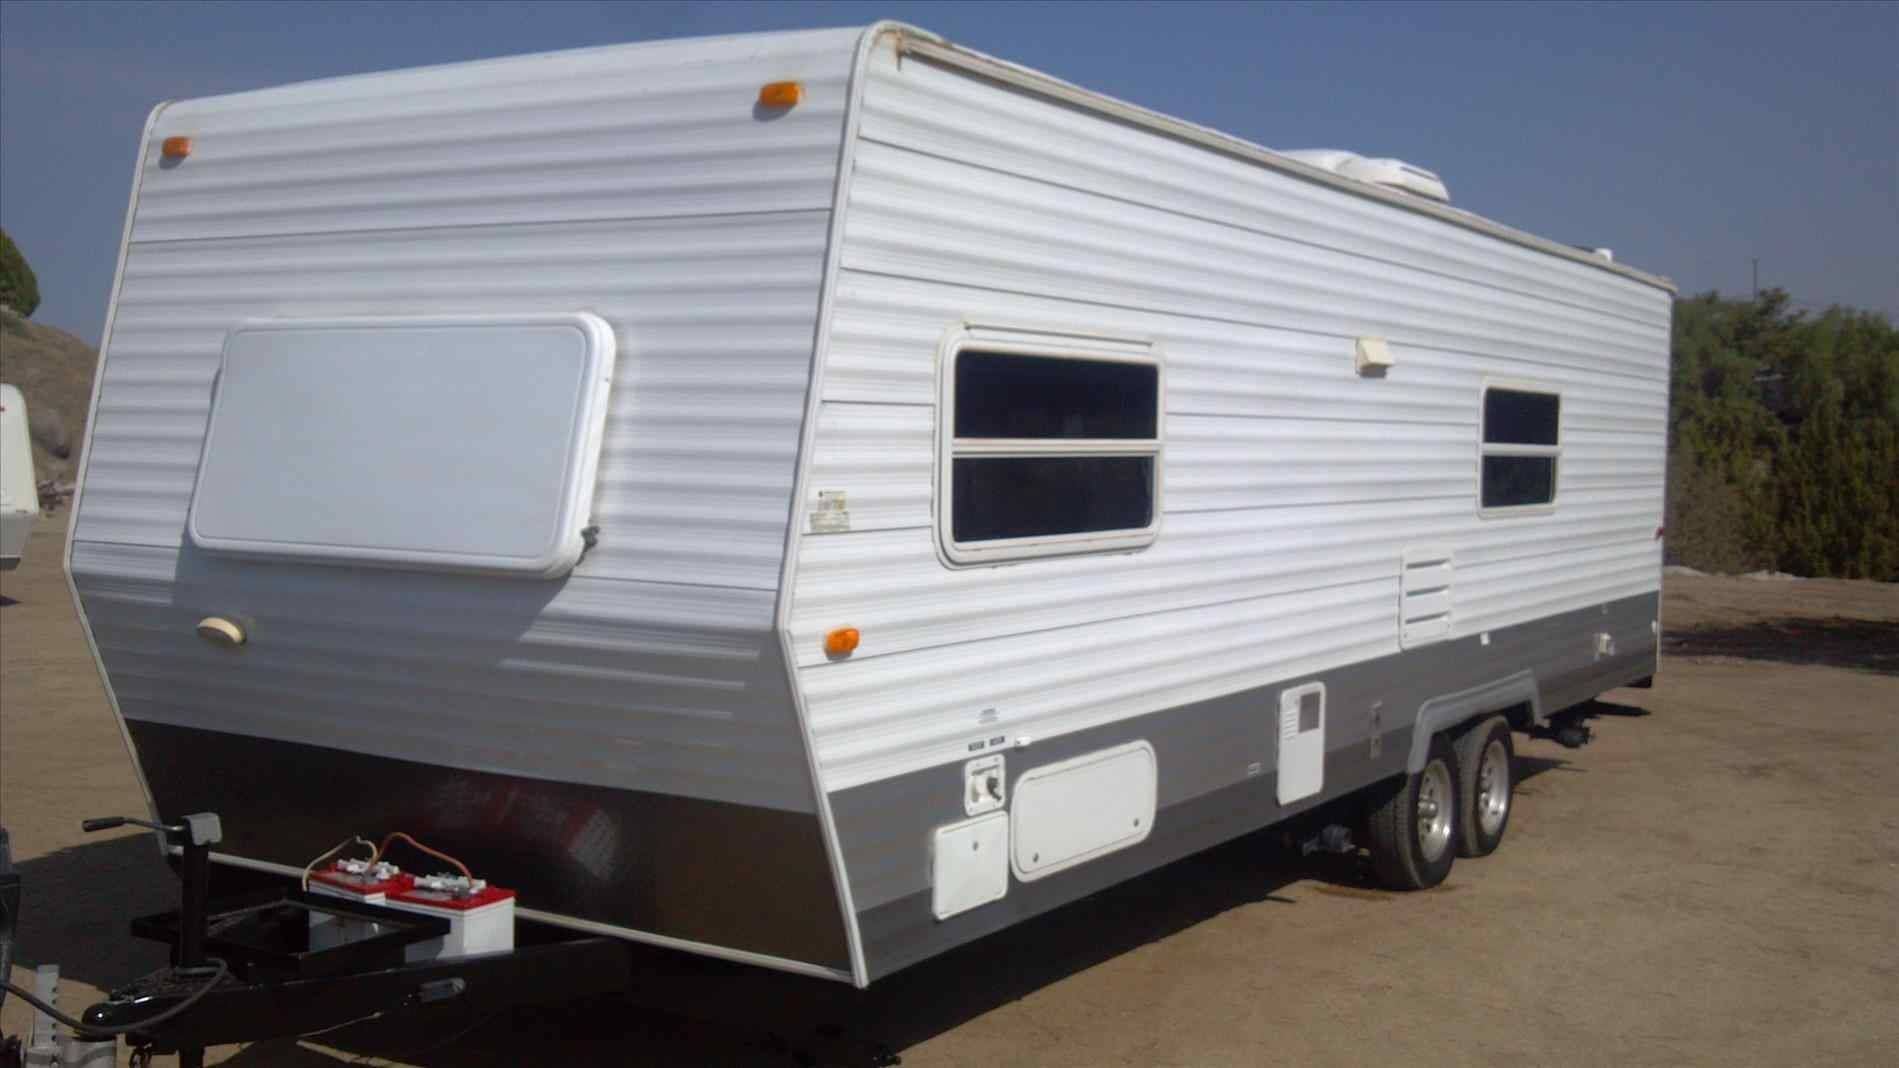 Vintage Campers Sale Craigslist Athelred - Brainly Quotes